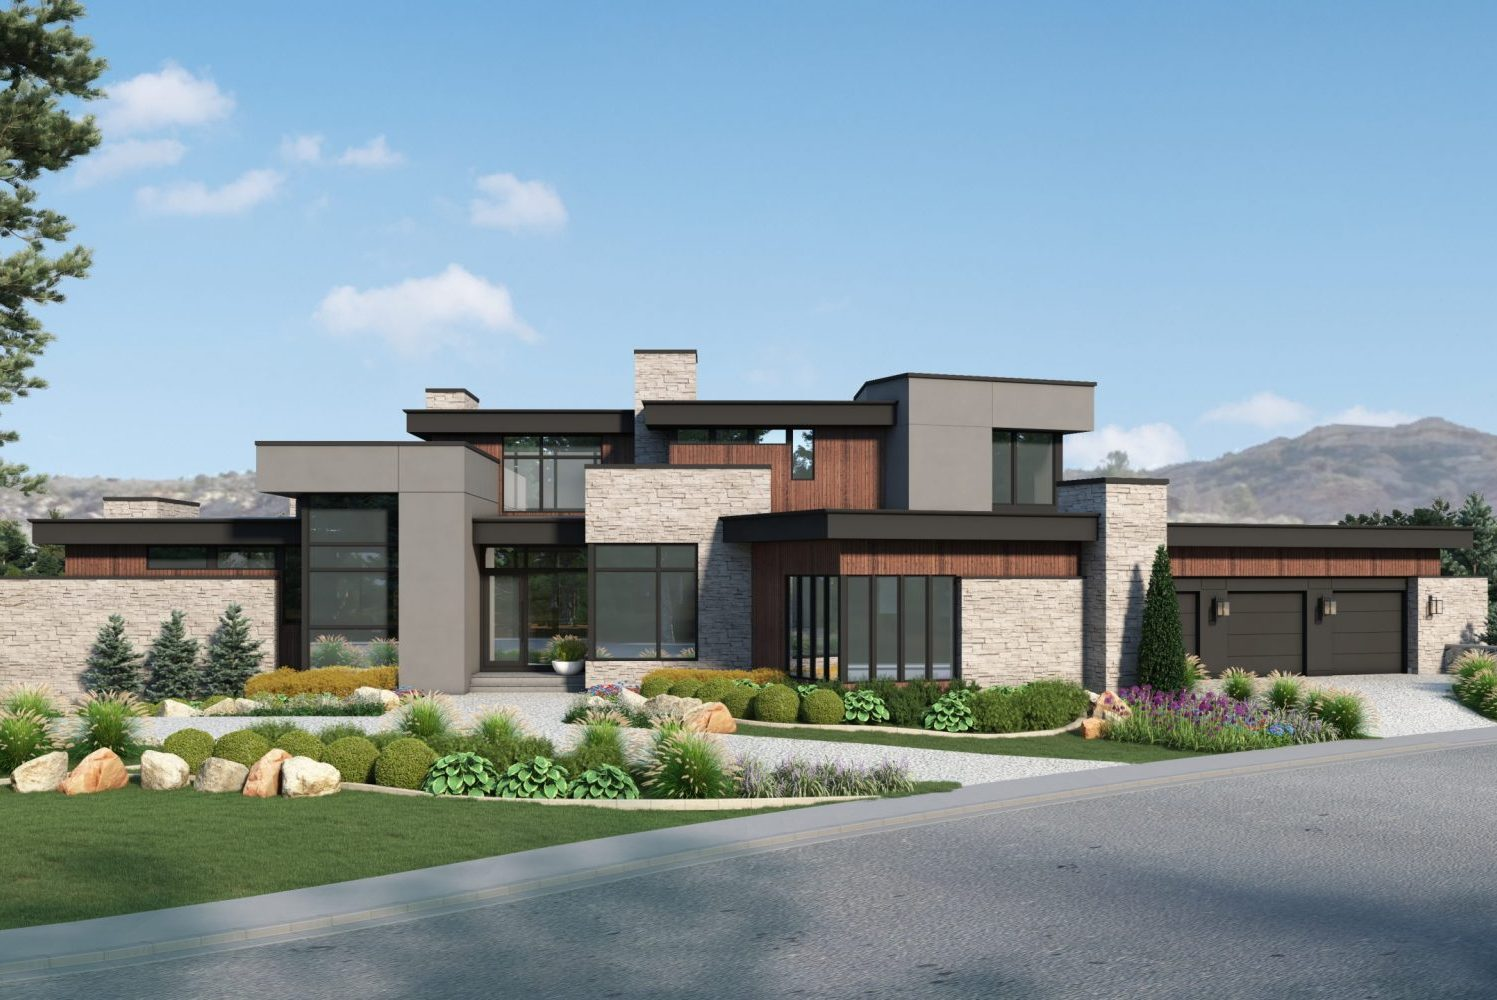 ultra modern custom home in Colorado with wood accent details and modern stone designed by award winning firm, Godden Sudik Architects